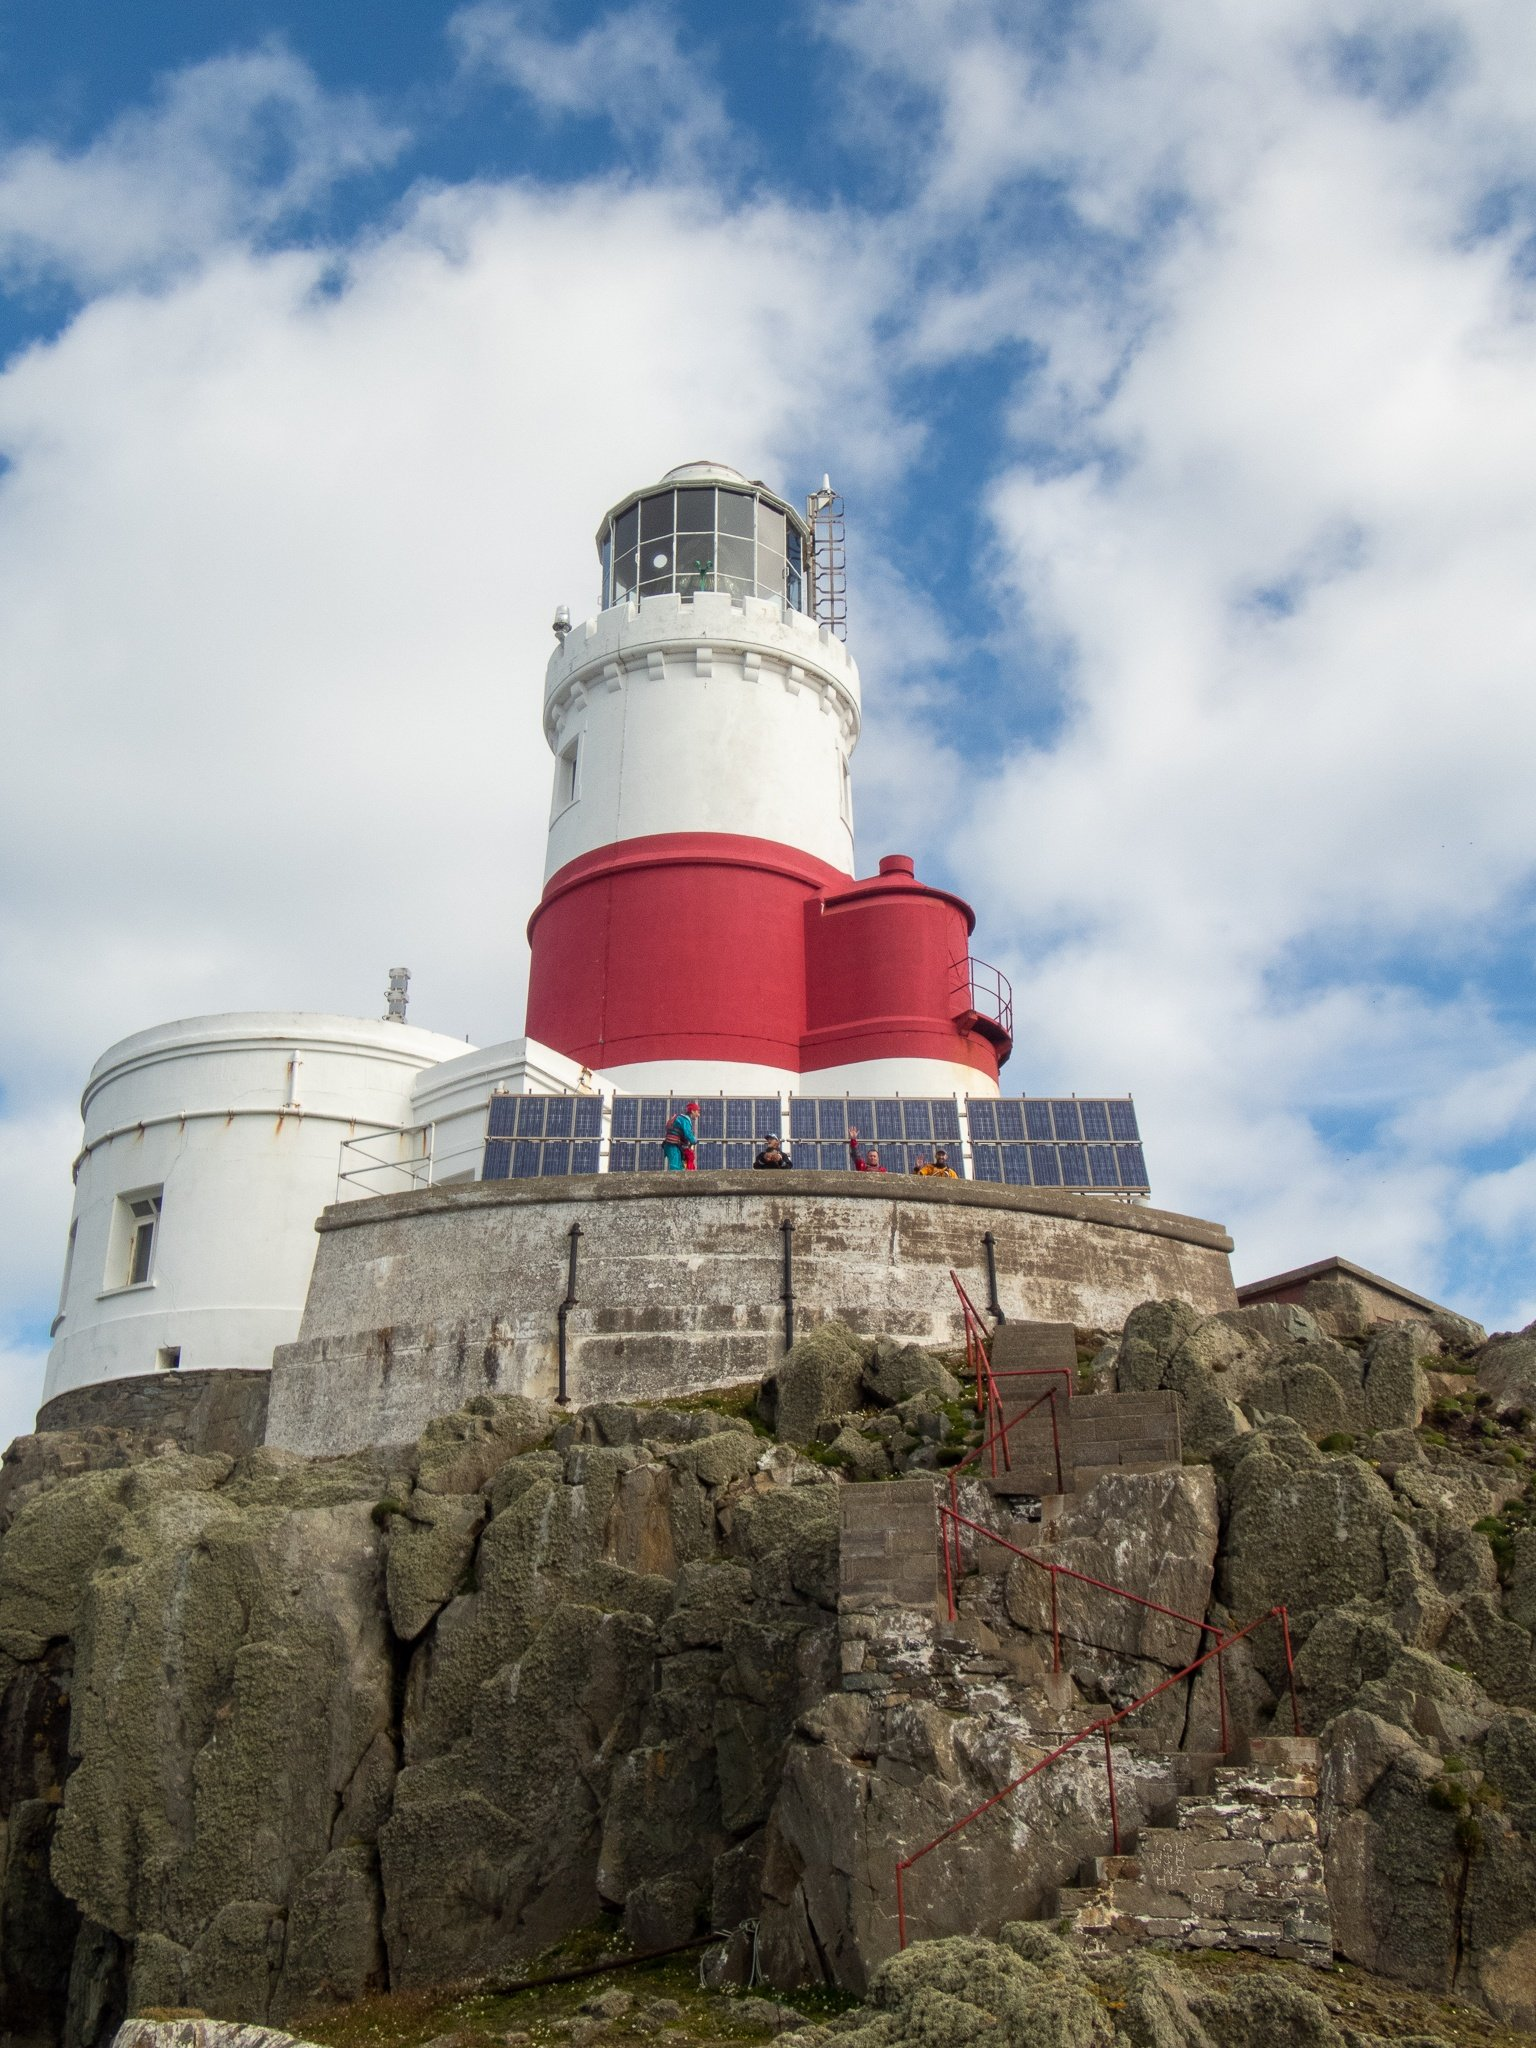 The Light and lunch stop